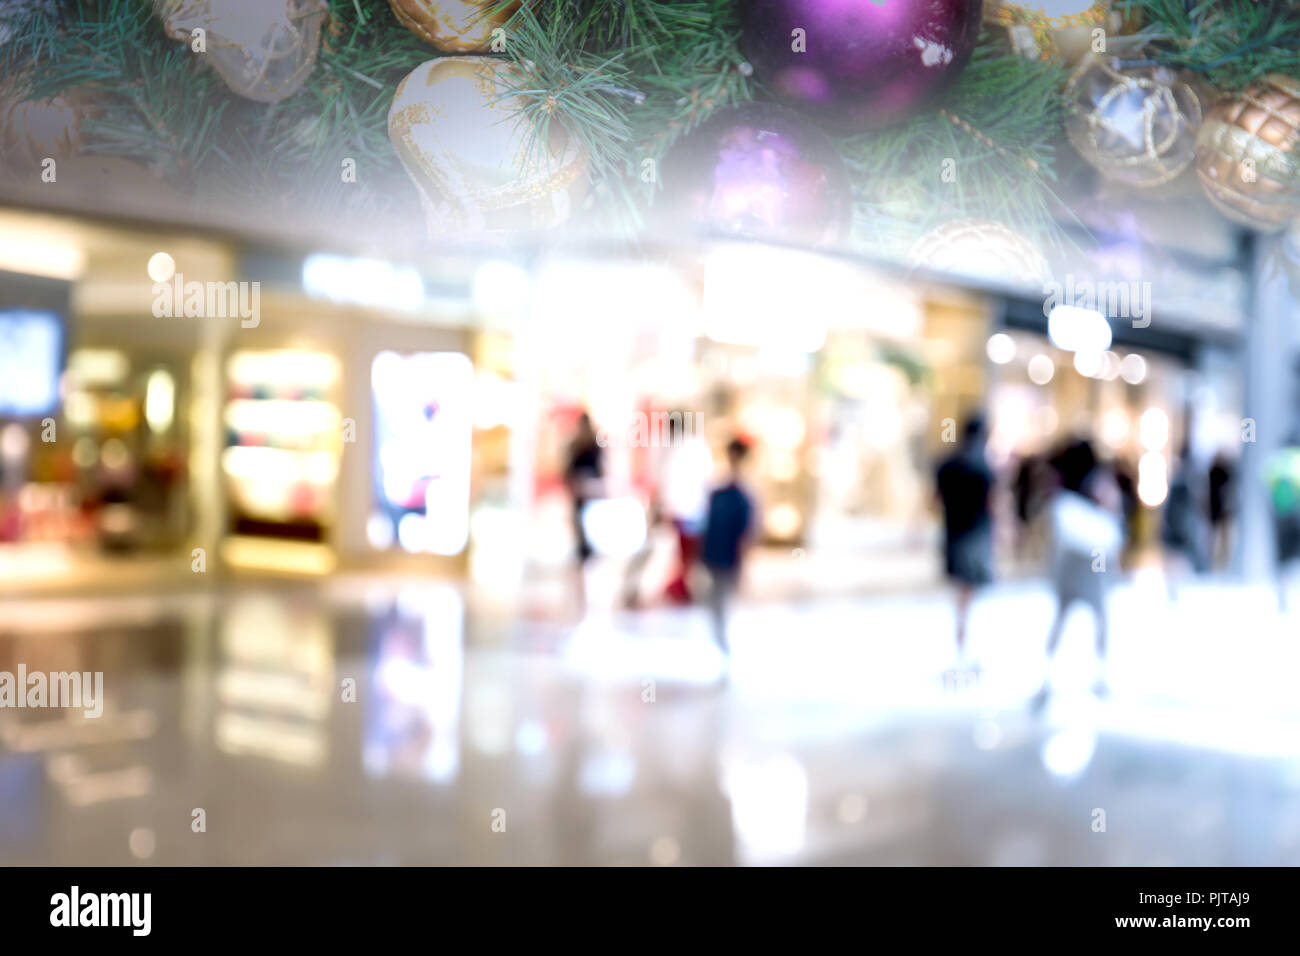 Abstract blur image of shopping mall with Christmas decoration on ...